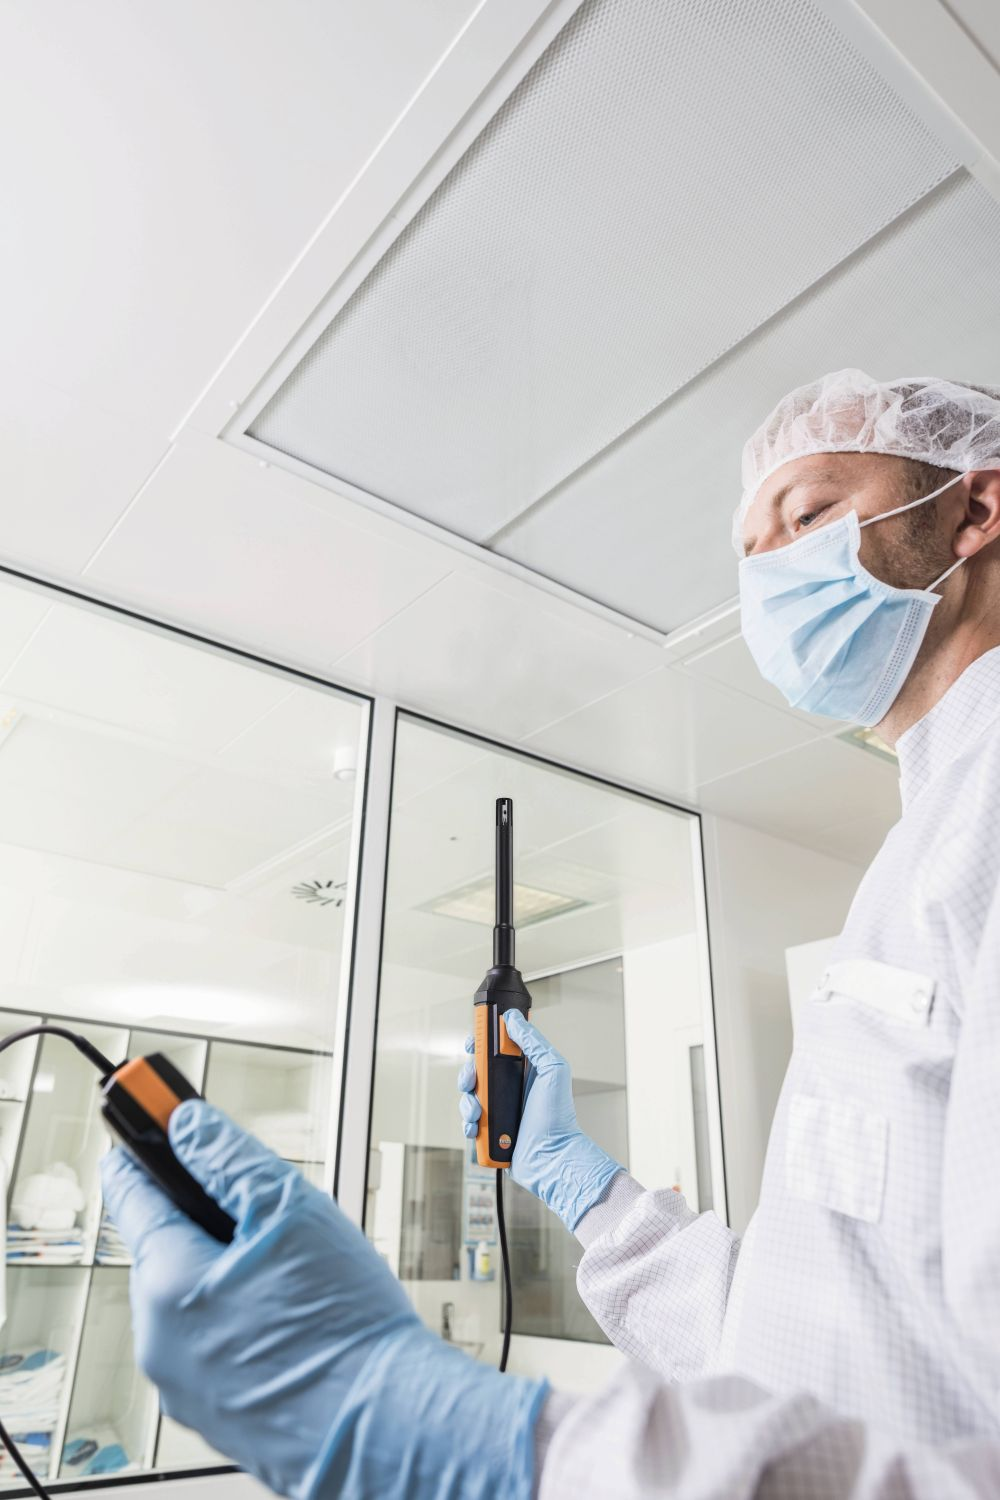 Humidity  measurements in cleanrooms with high-precision humidity probe and testo 440